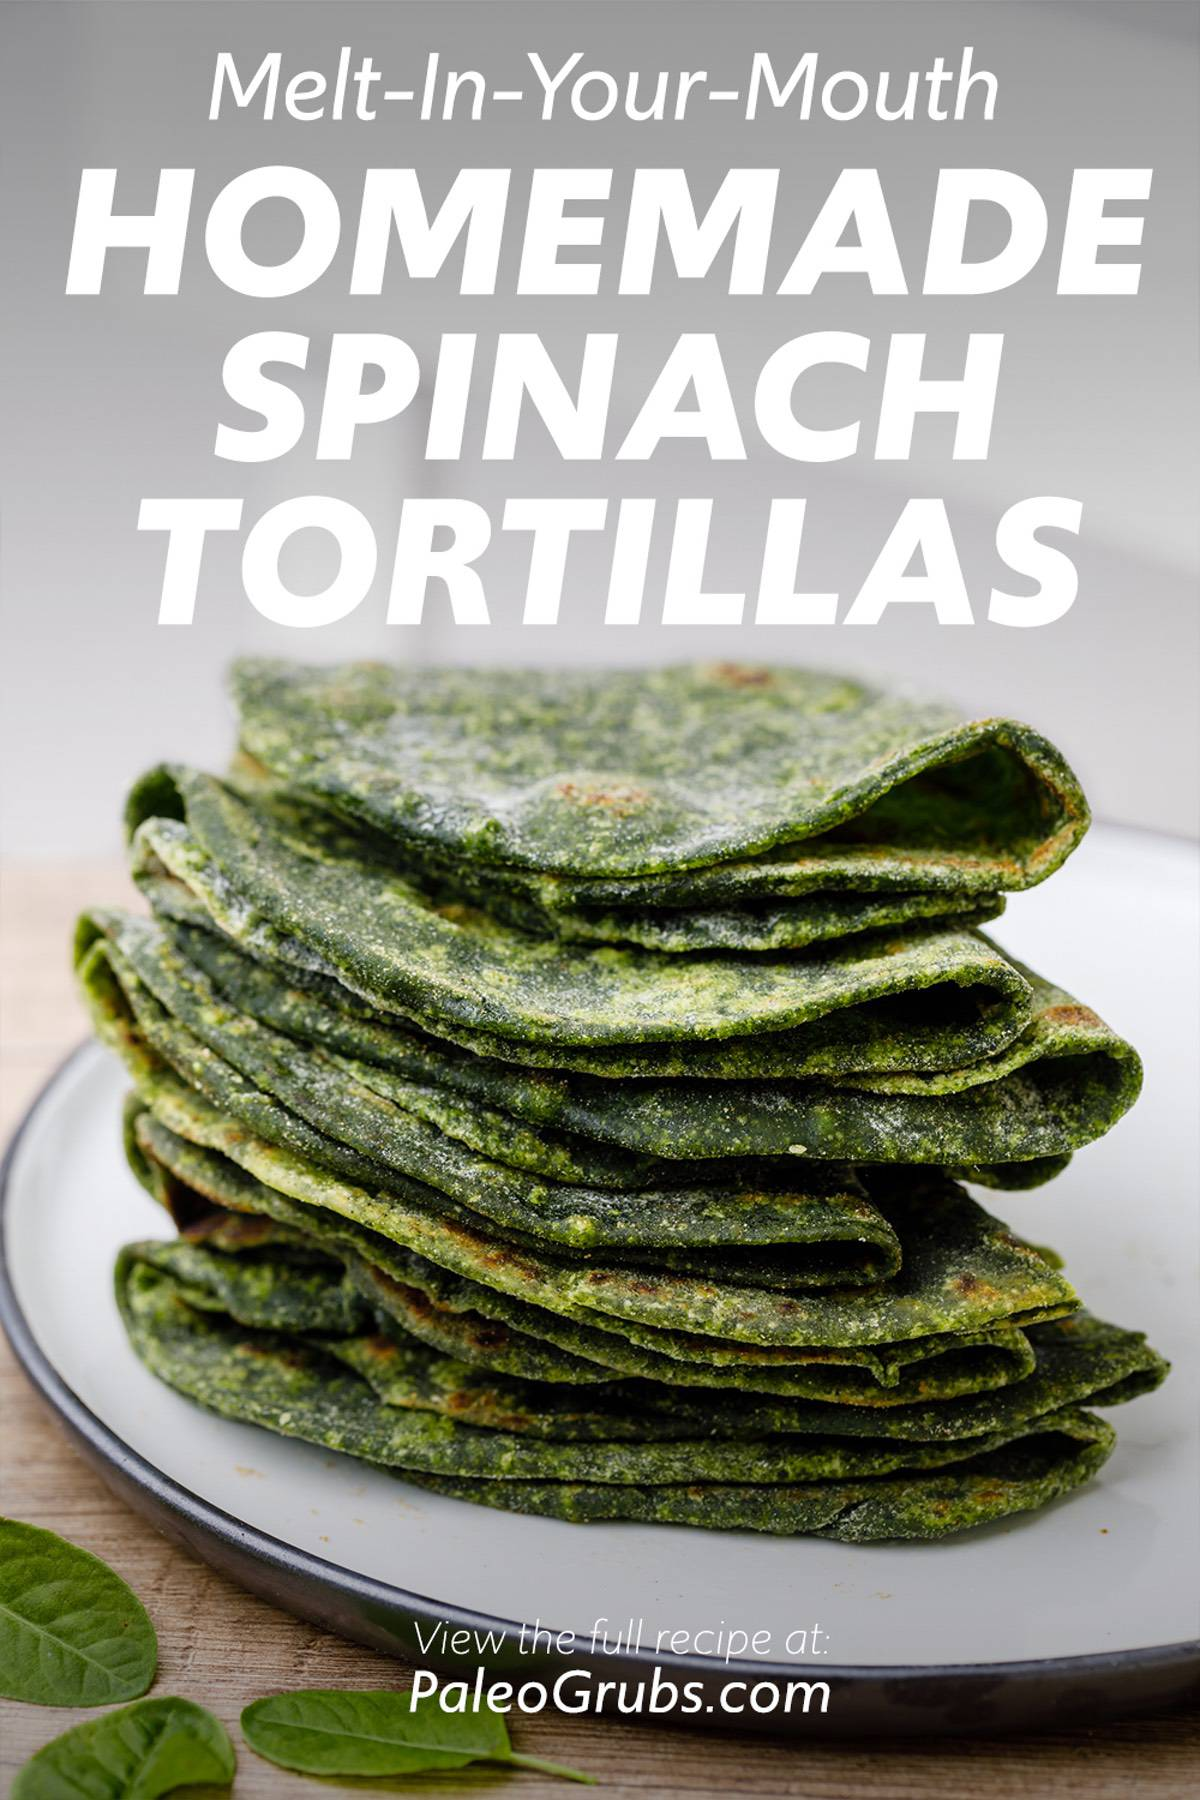 Melt-In-Your-Mouth Homemade Spinach Tortillas